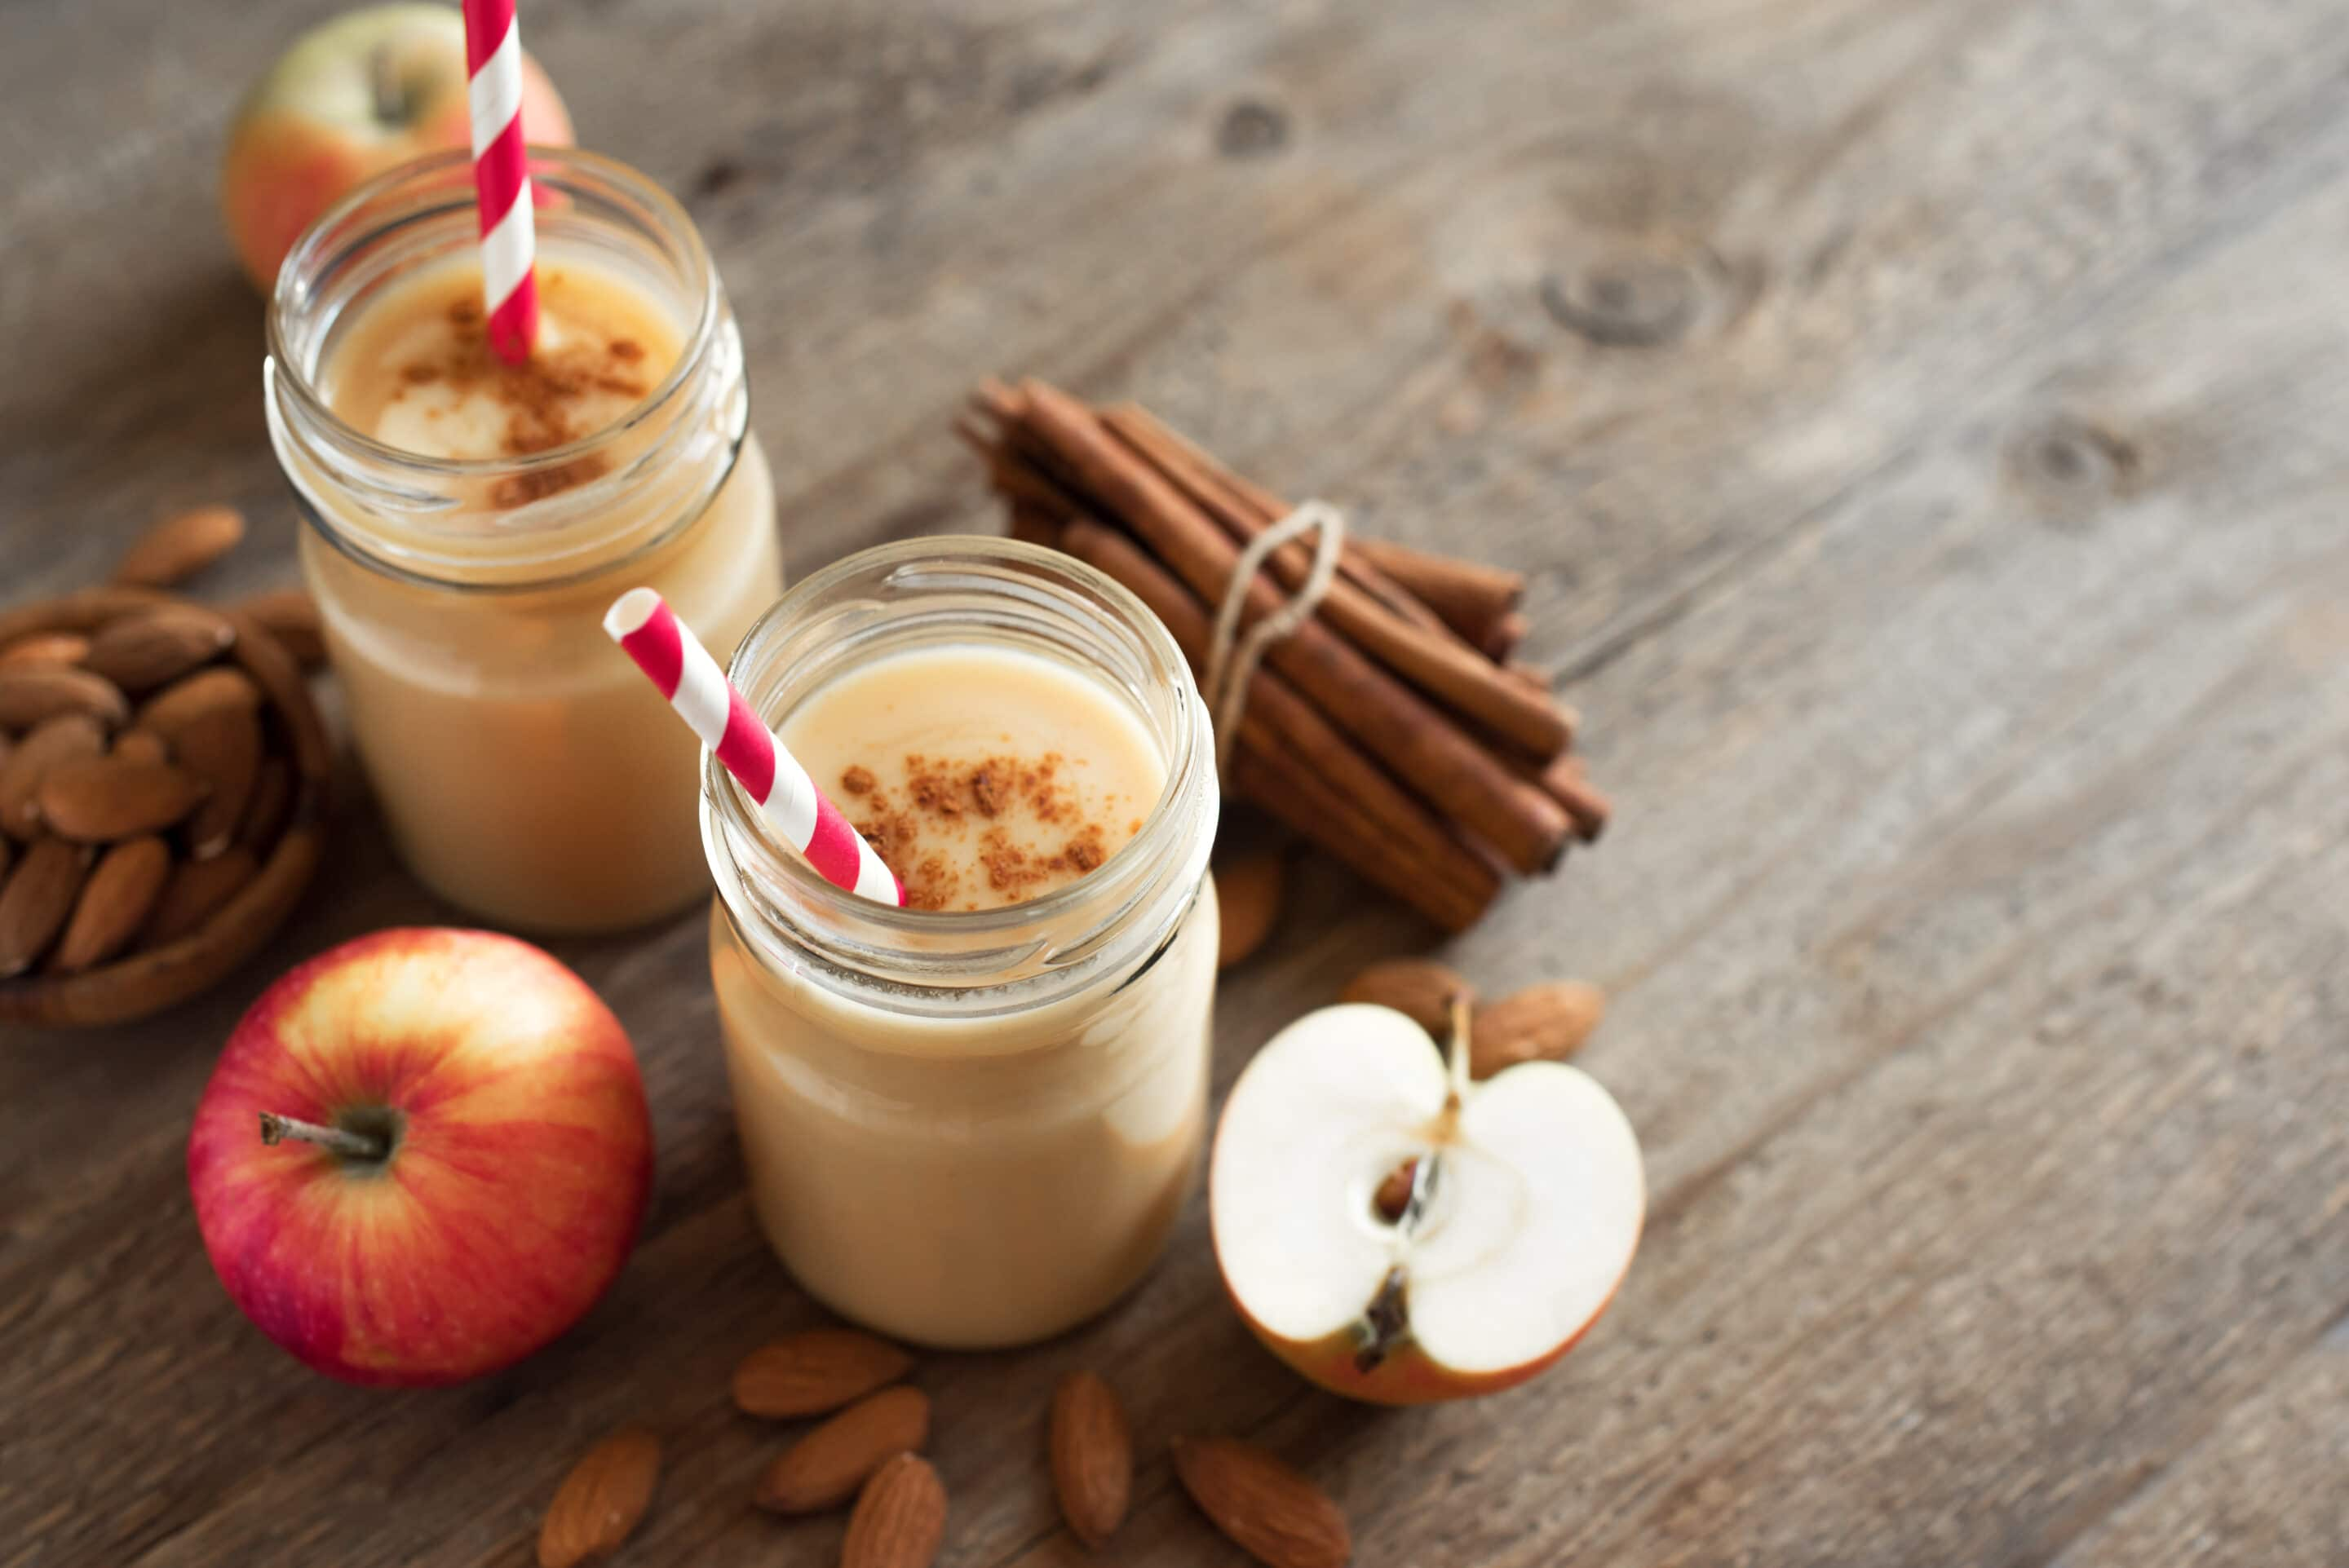 apple pie protein shake in glasses next to apples and cinnamon